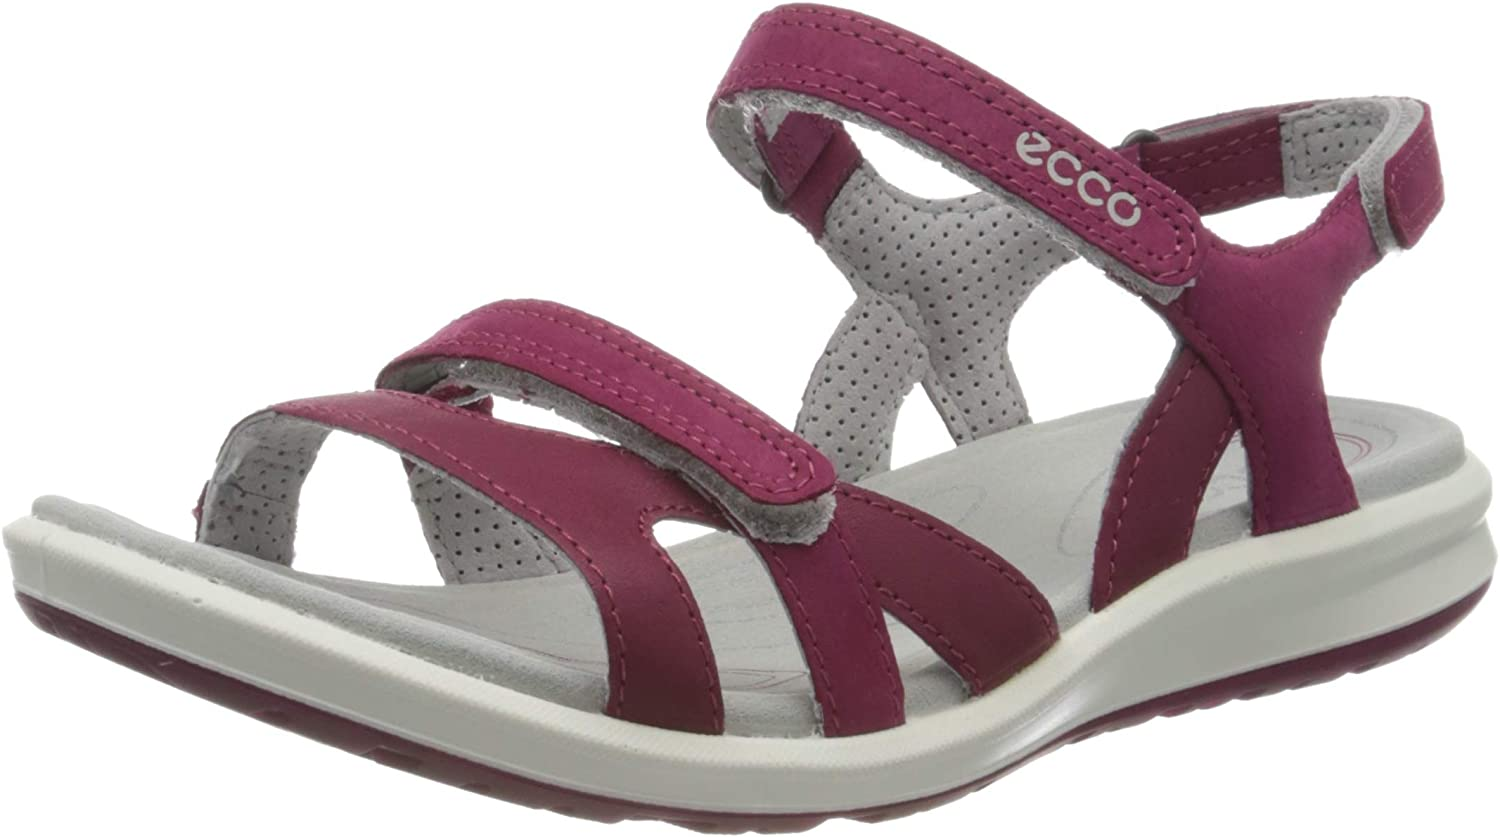 Long Beach Mall ECCO Price reduction Women's Ankle Strap 4 Sandals UK